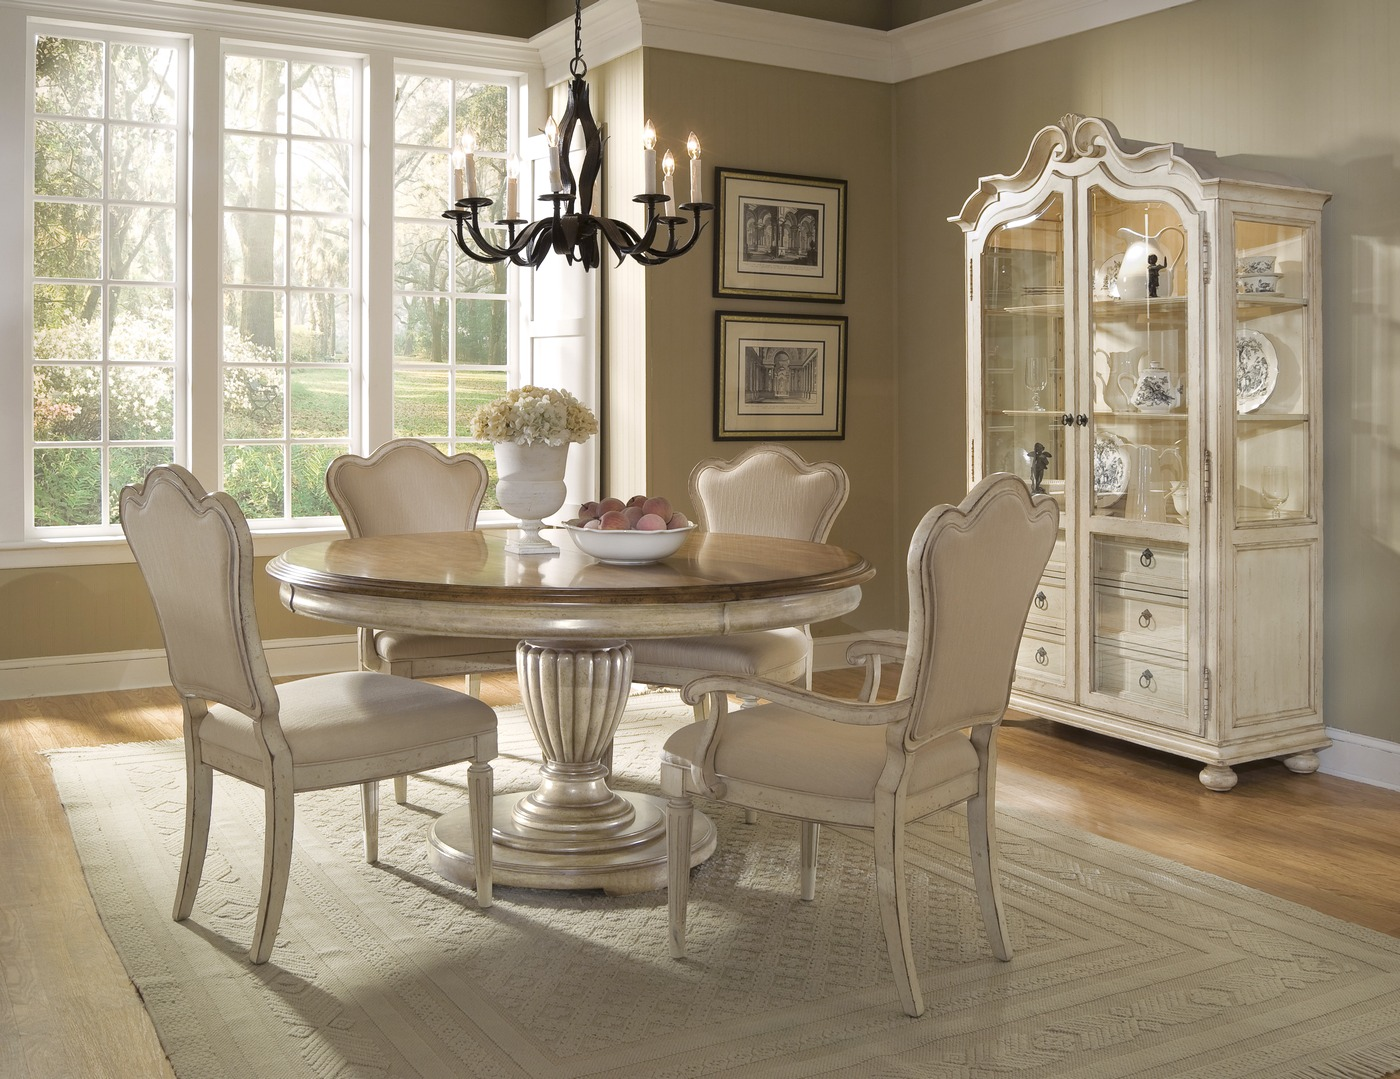 chairs for dining room table | French Country Dining Room Set | French Country Table and ...